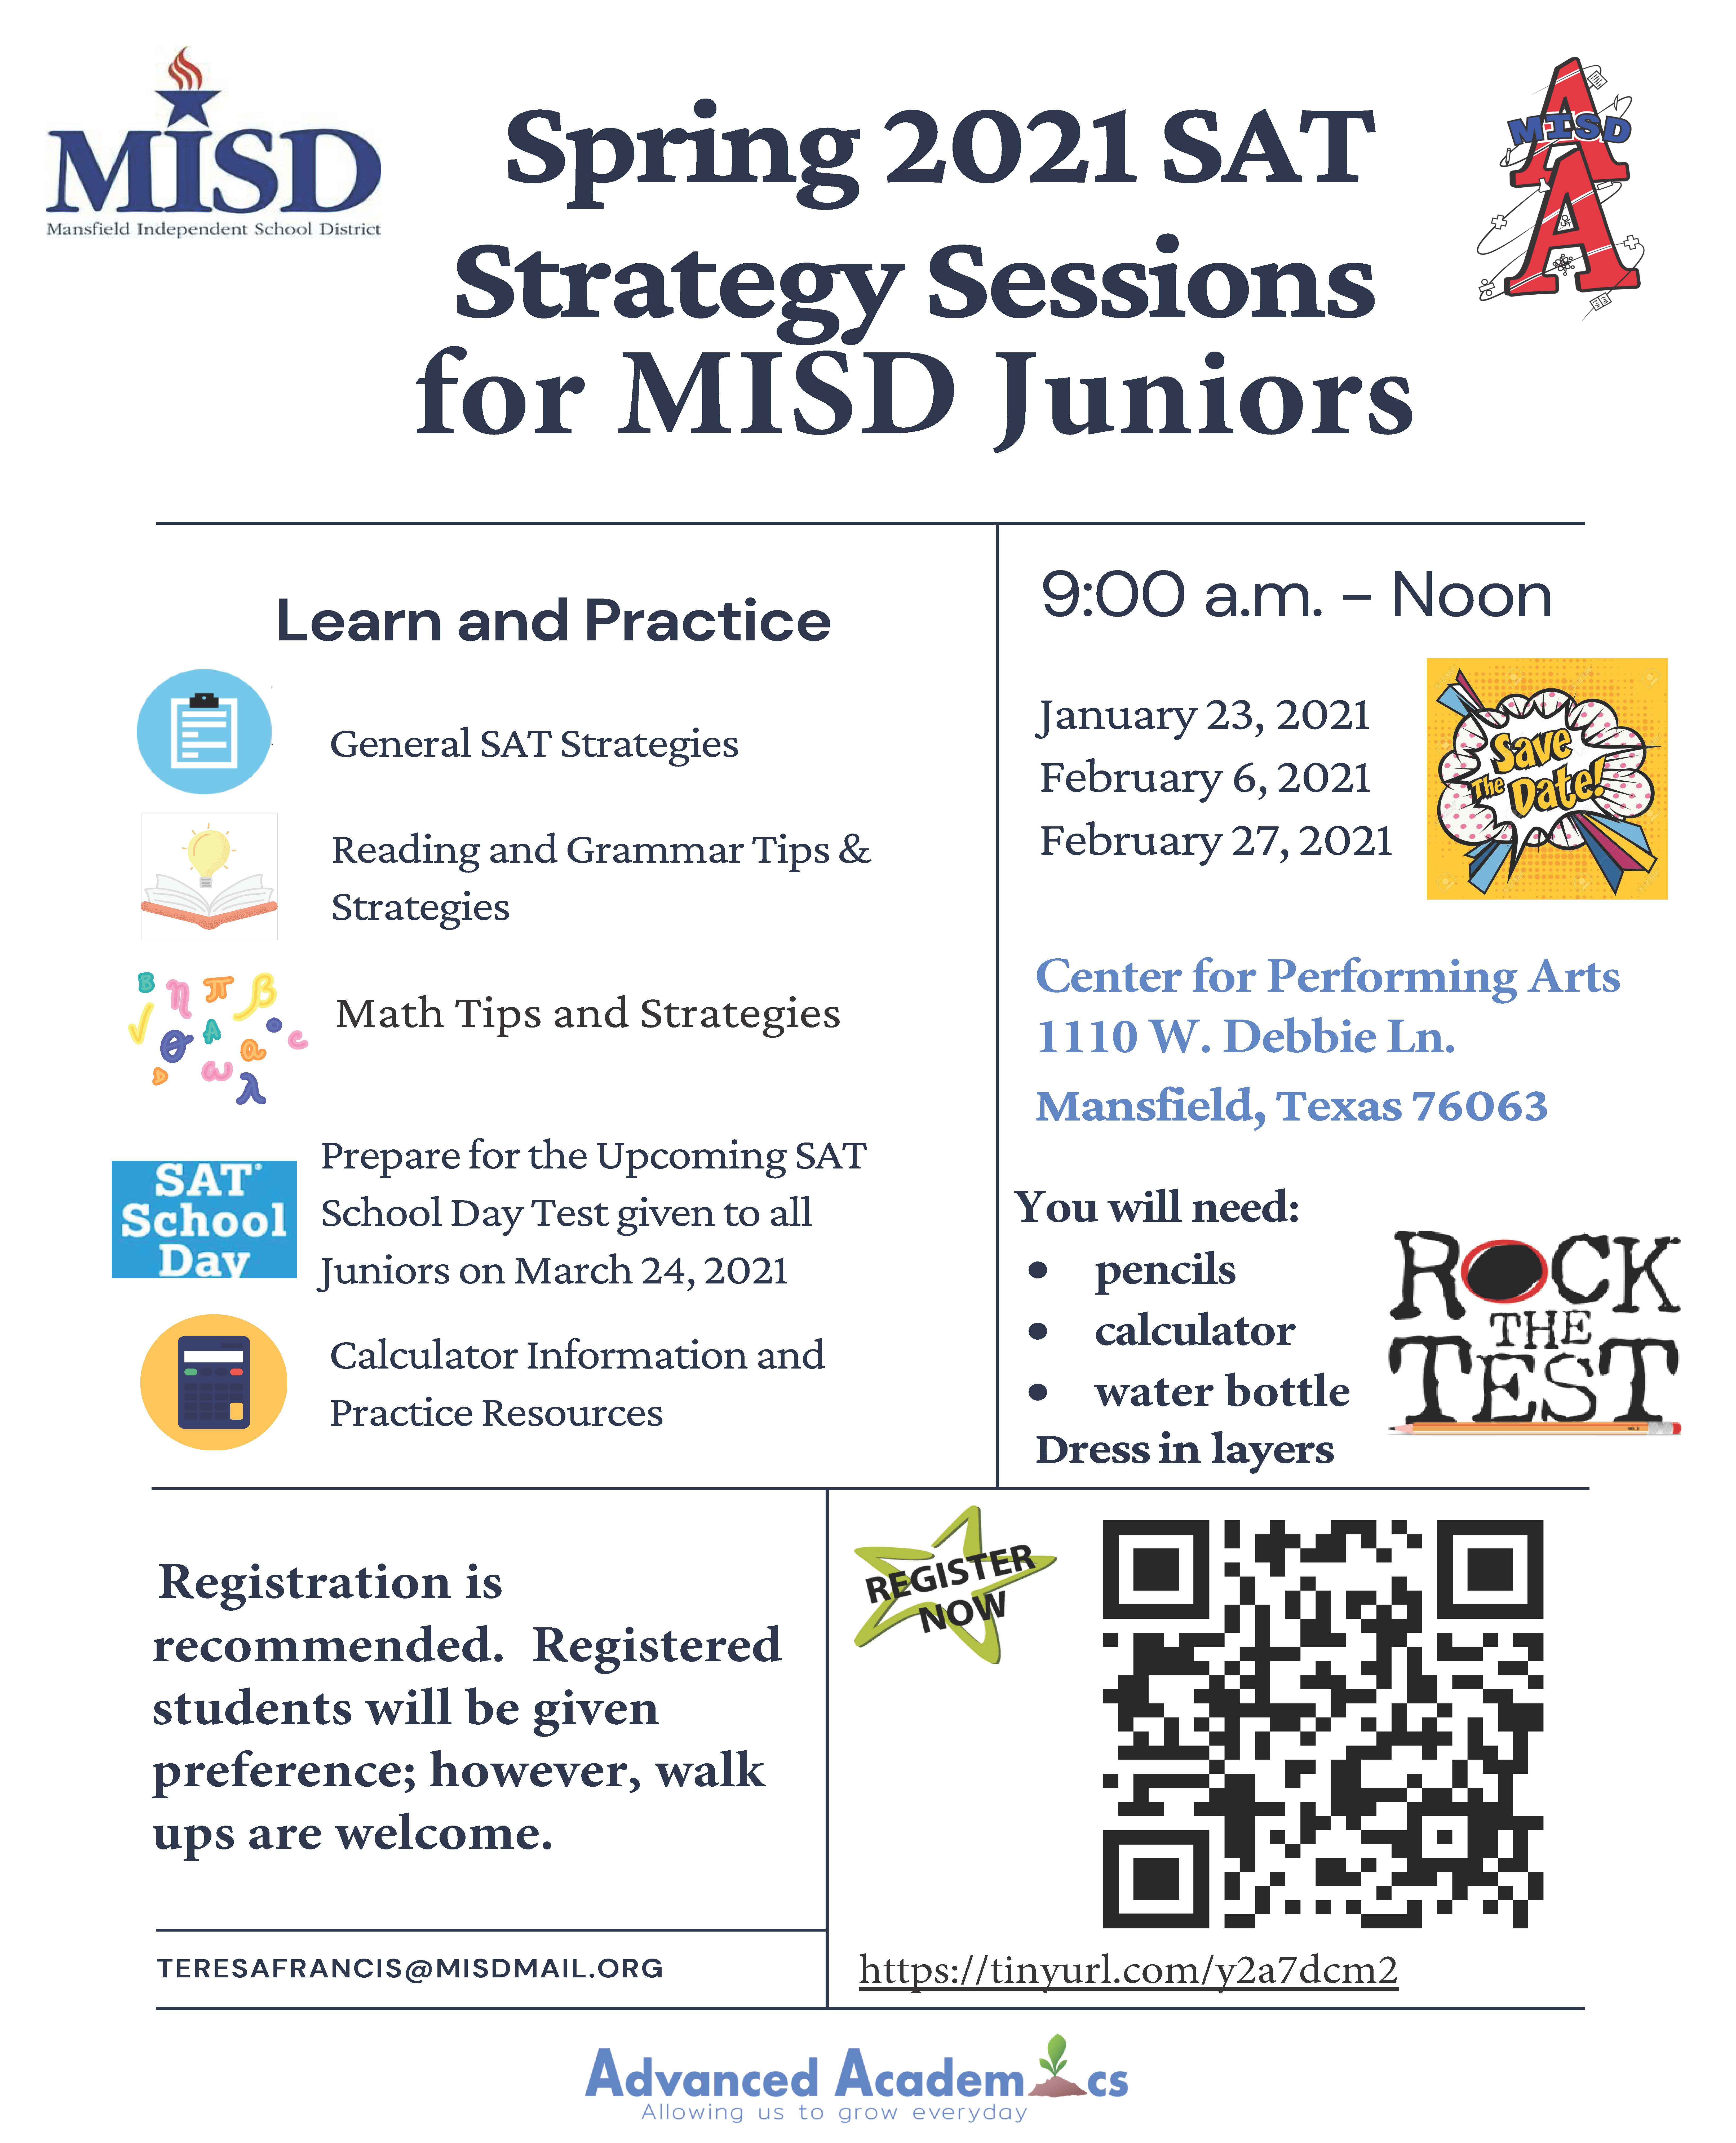 SAT Strategy Sessions Flyer Image